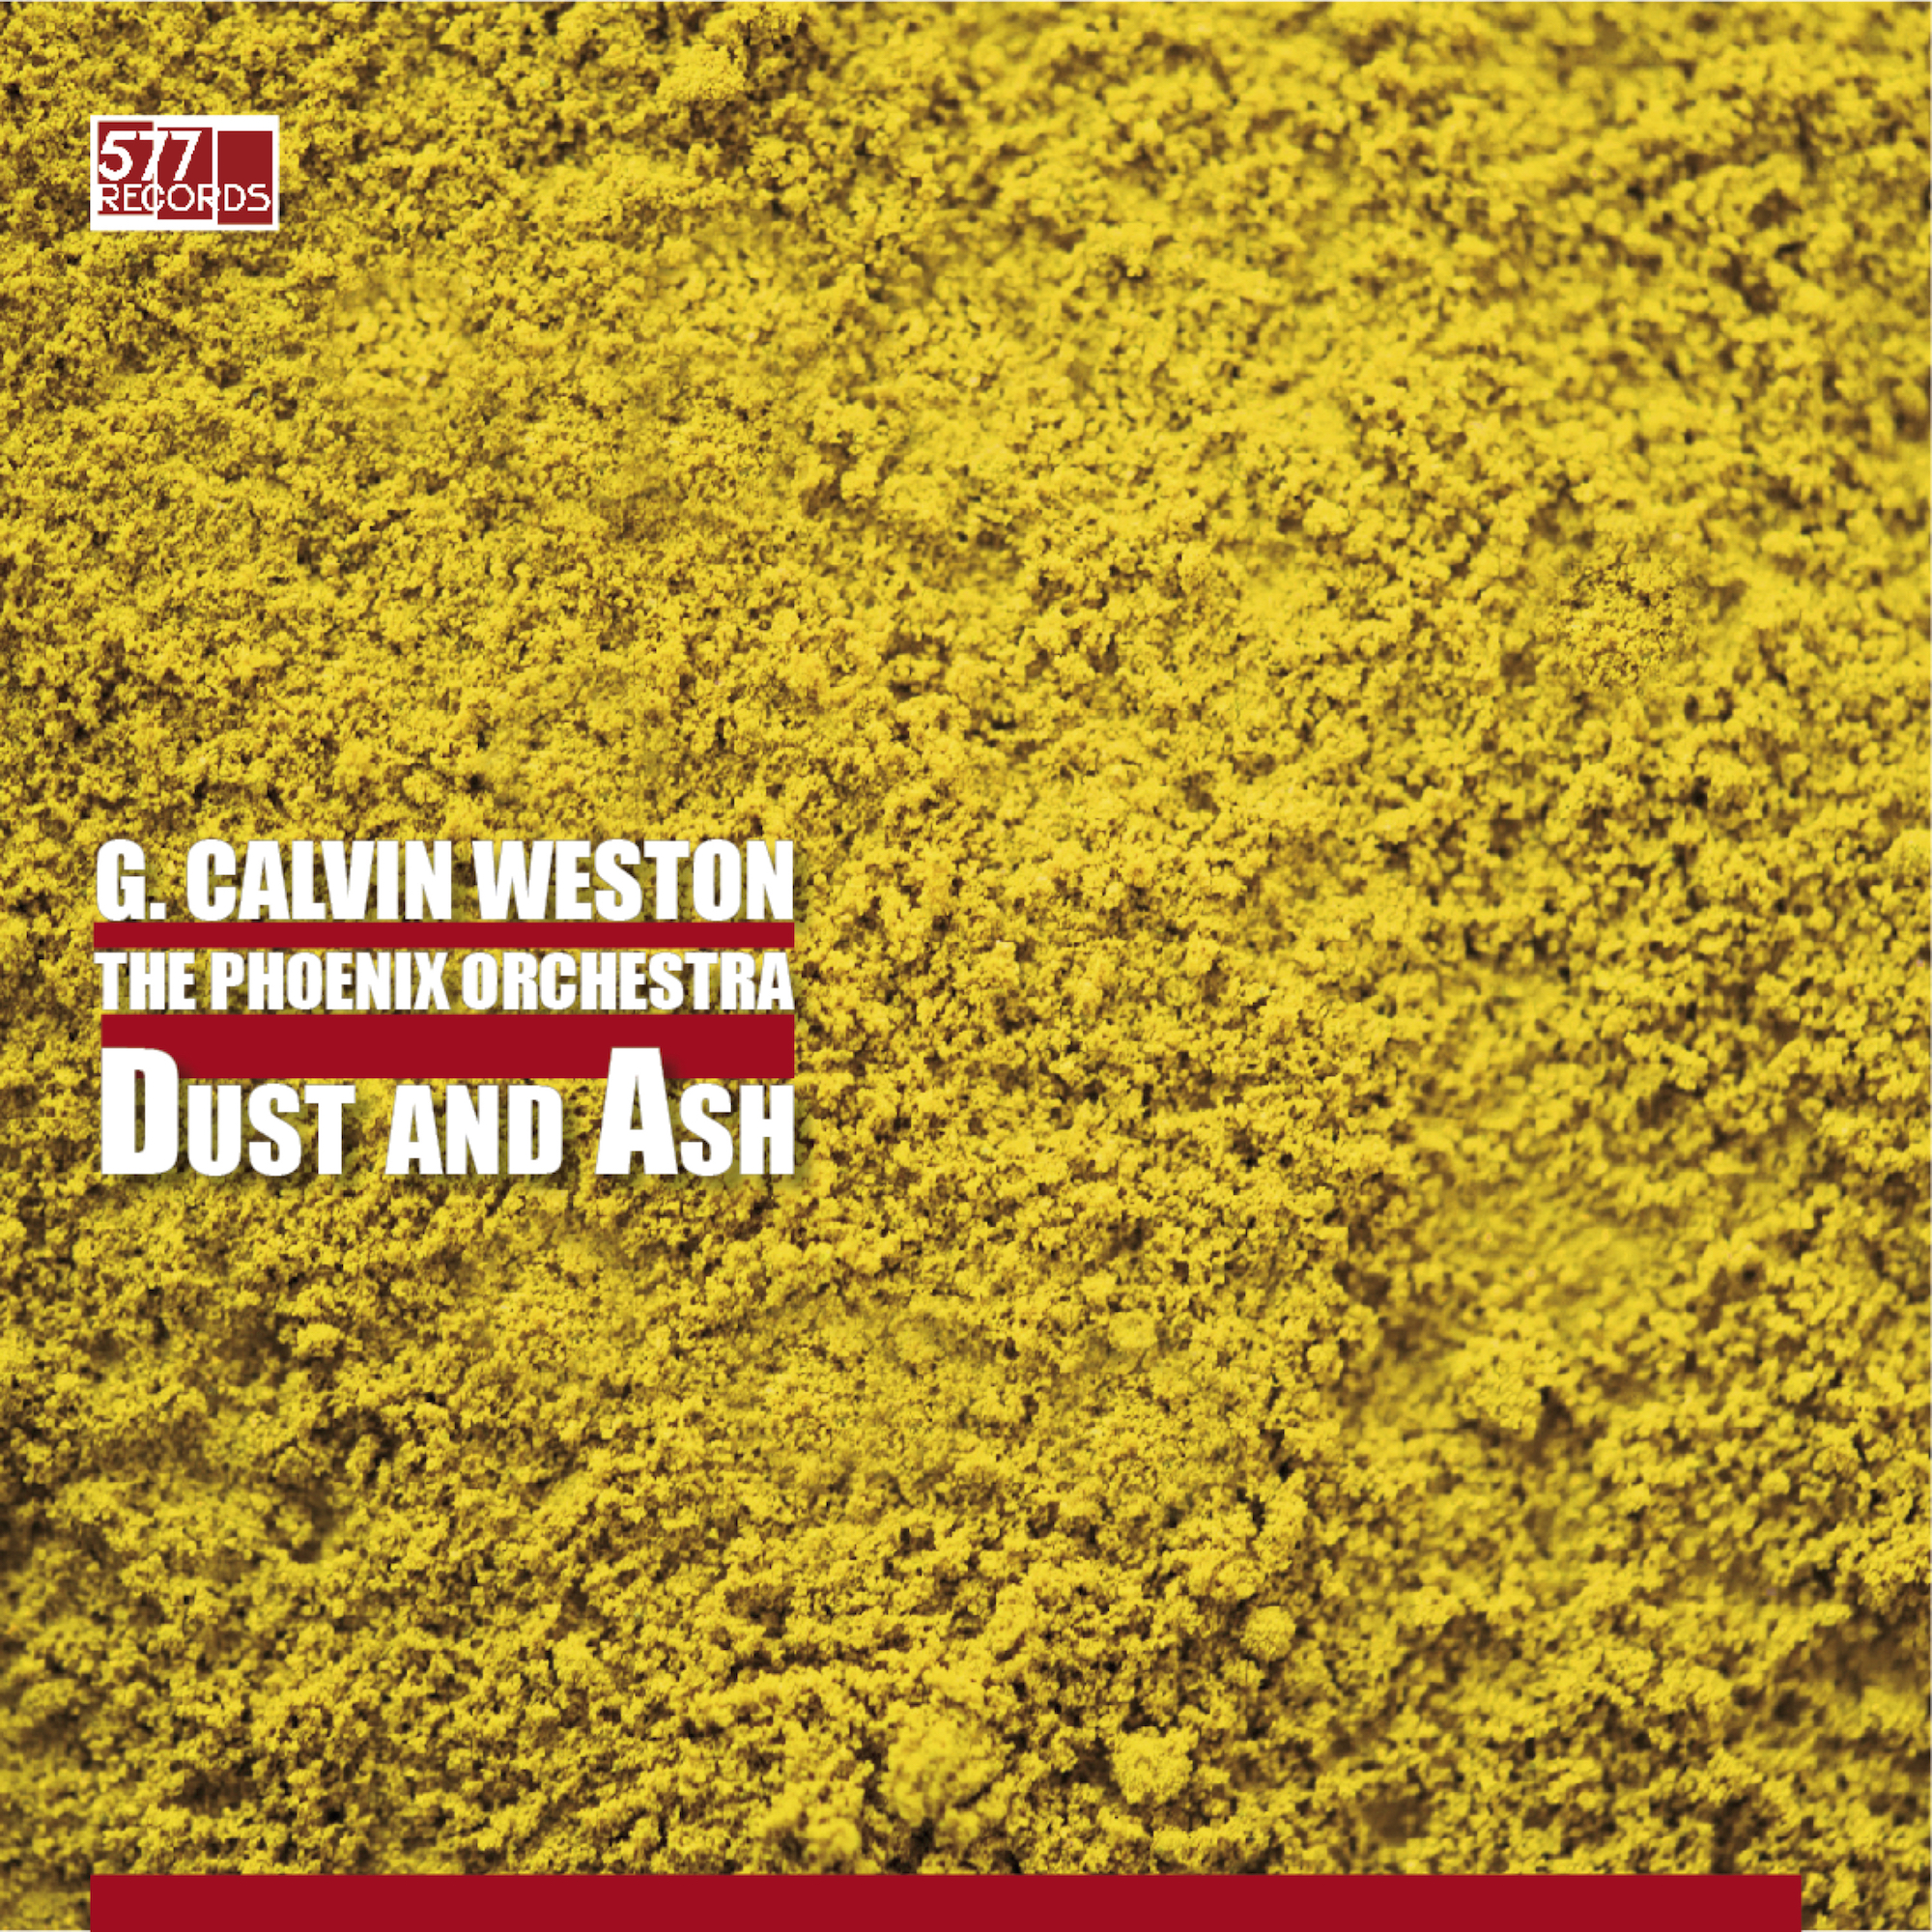 G. CALVIN WESTON  THE PHOENIX ORCHESTRA - DUST AND ASH  PRE-ORDER